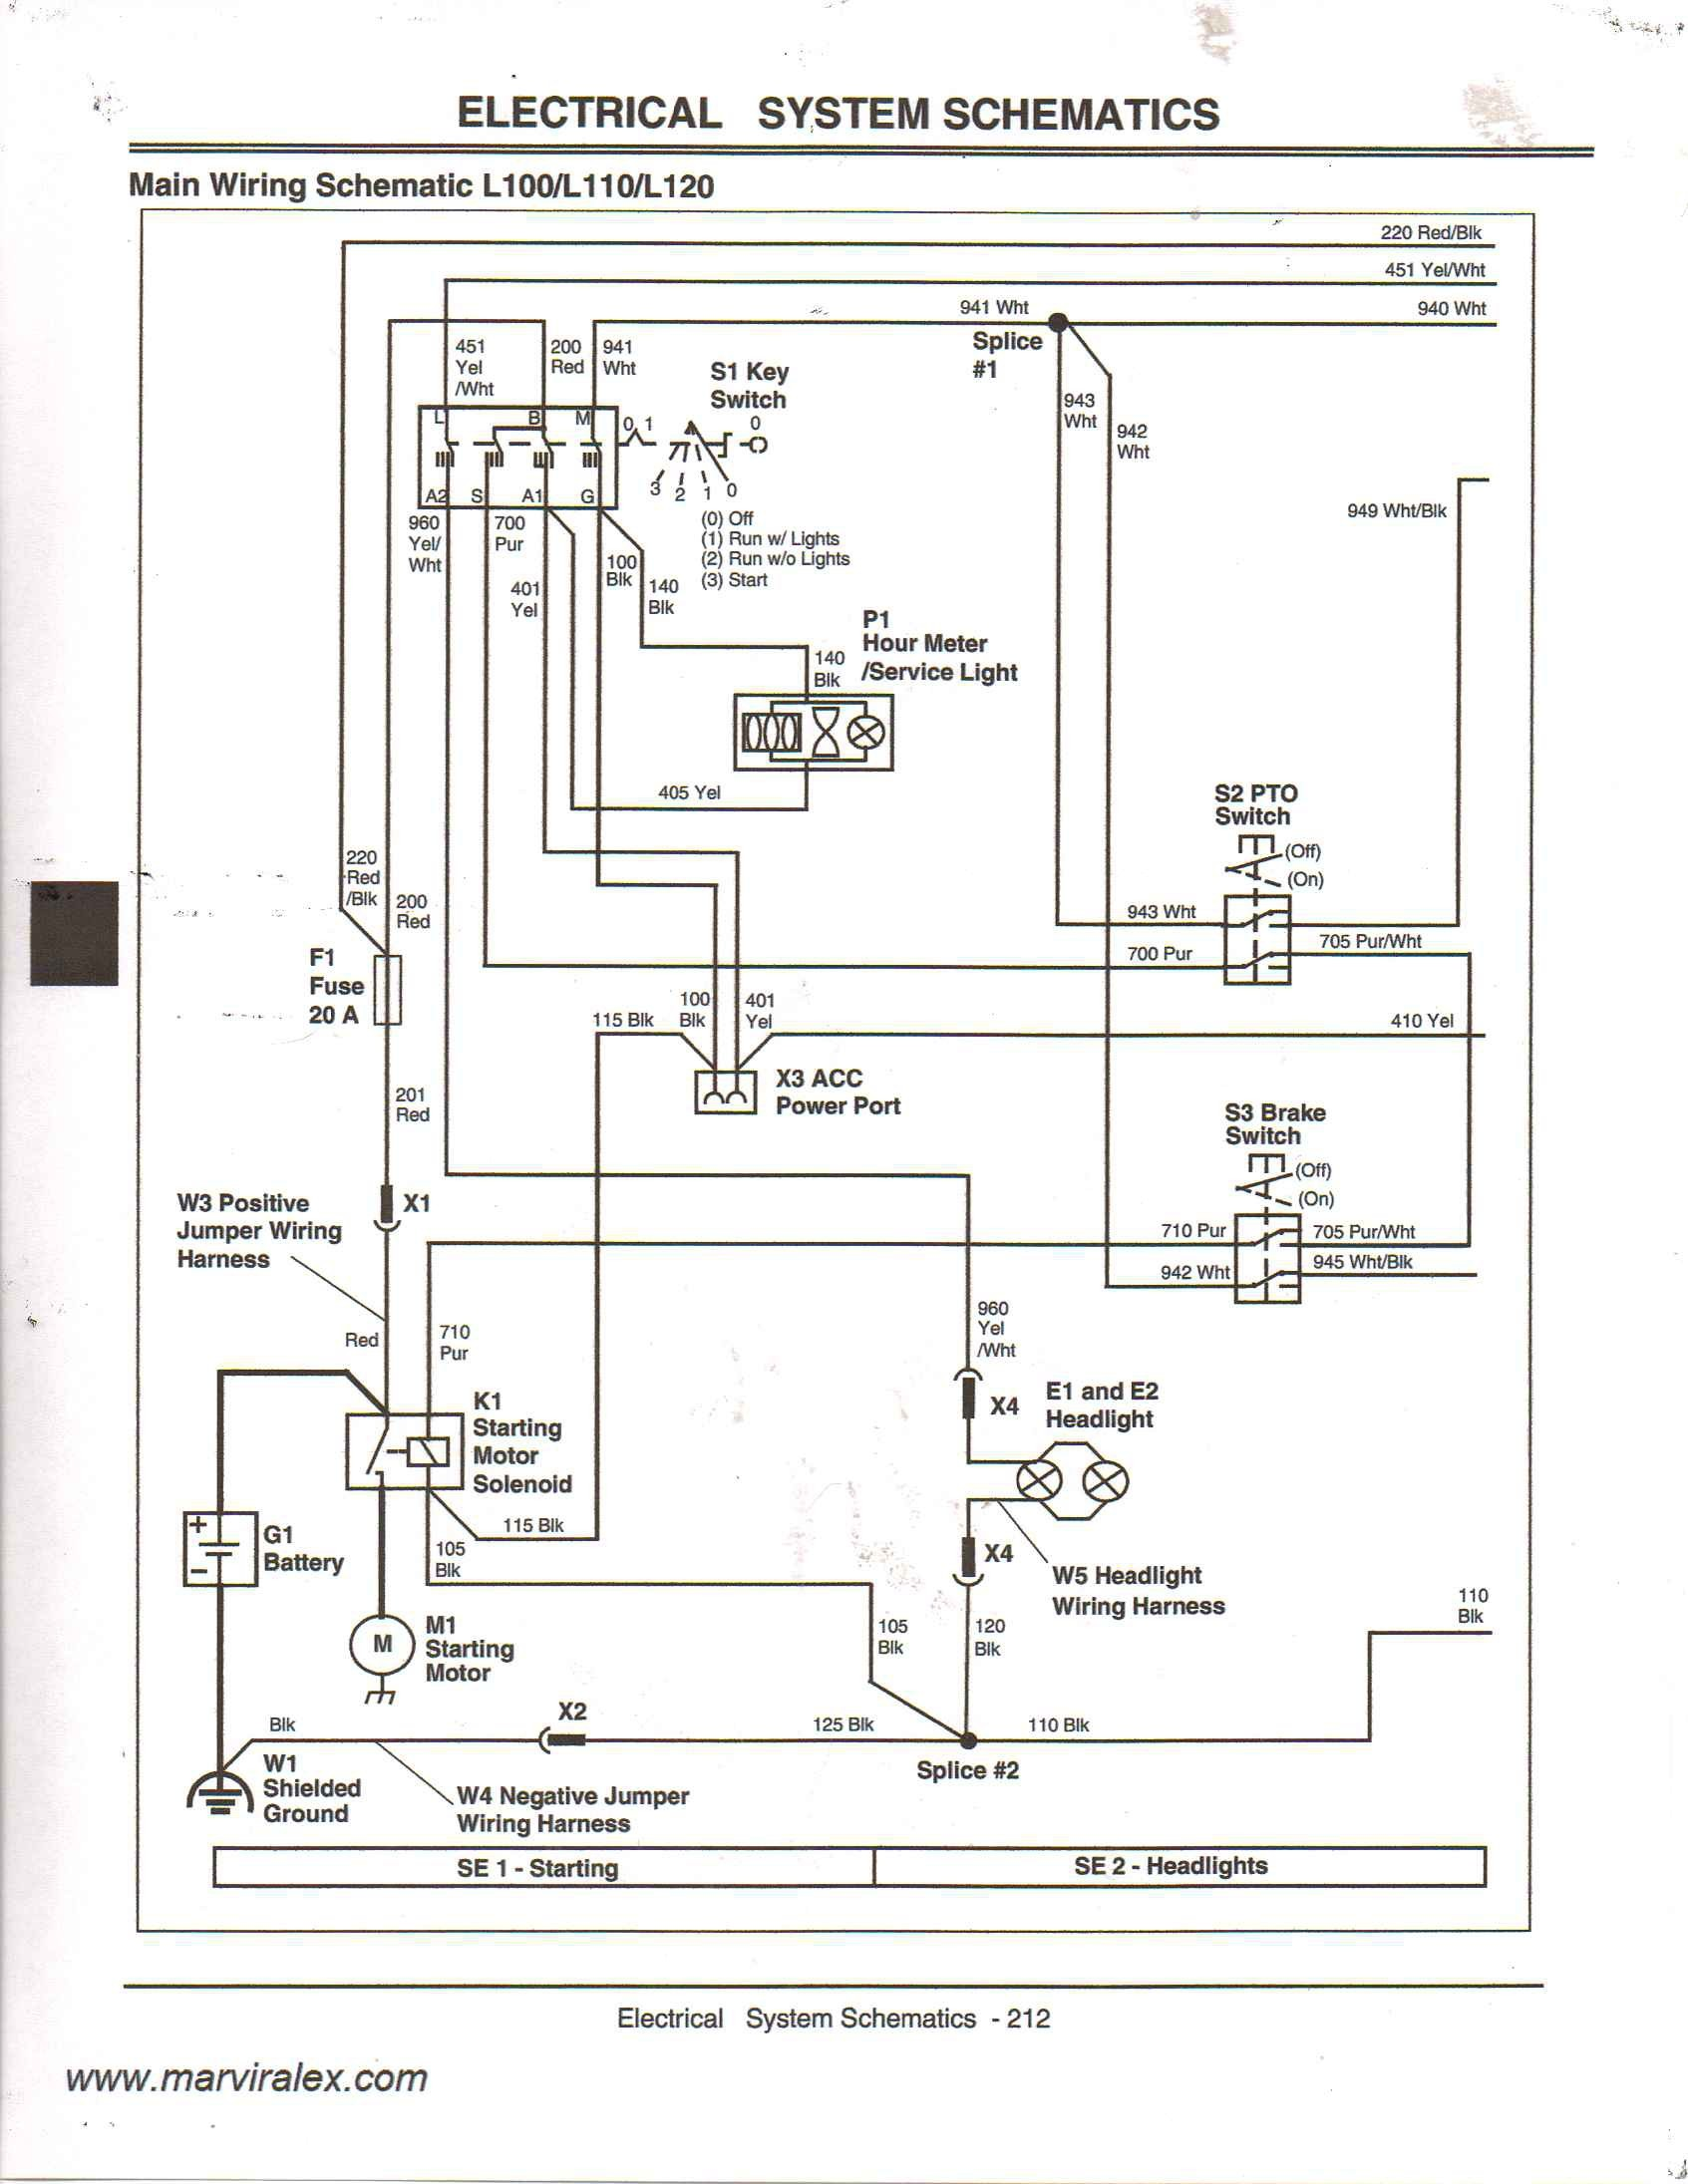 John Deere Wiring Diagrams New the12volt Wiring Diagrams Diagram Of John Deere Wiring Diagrams